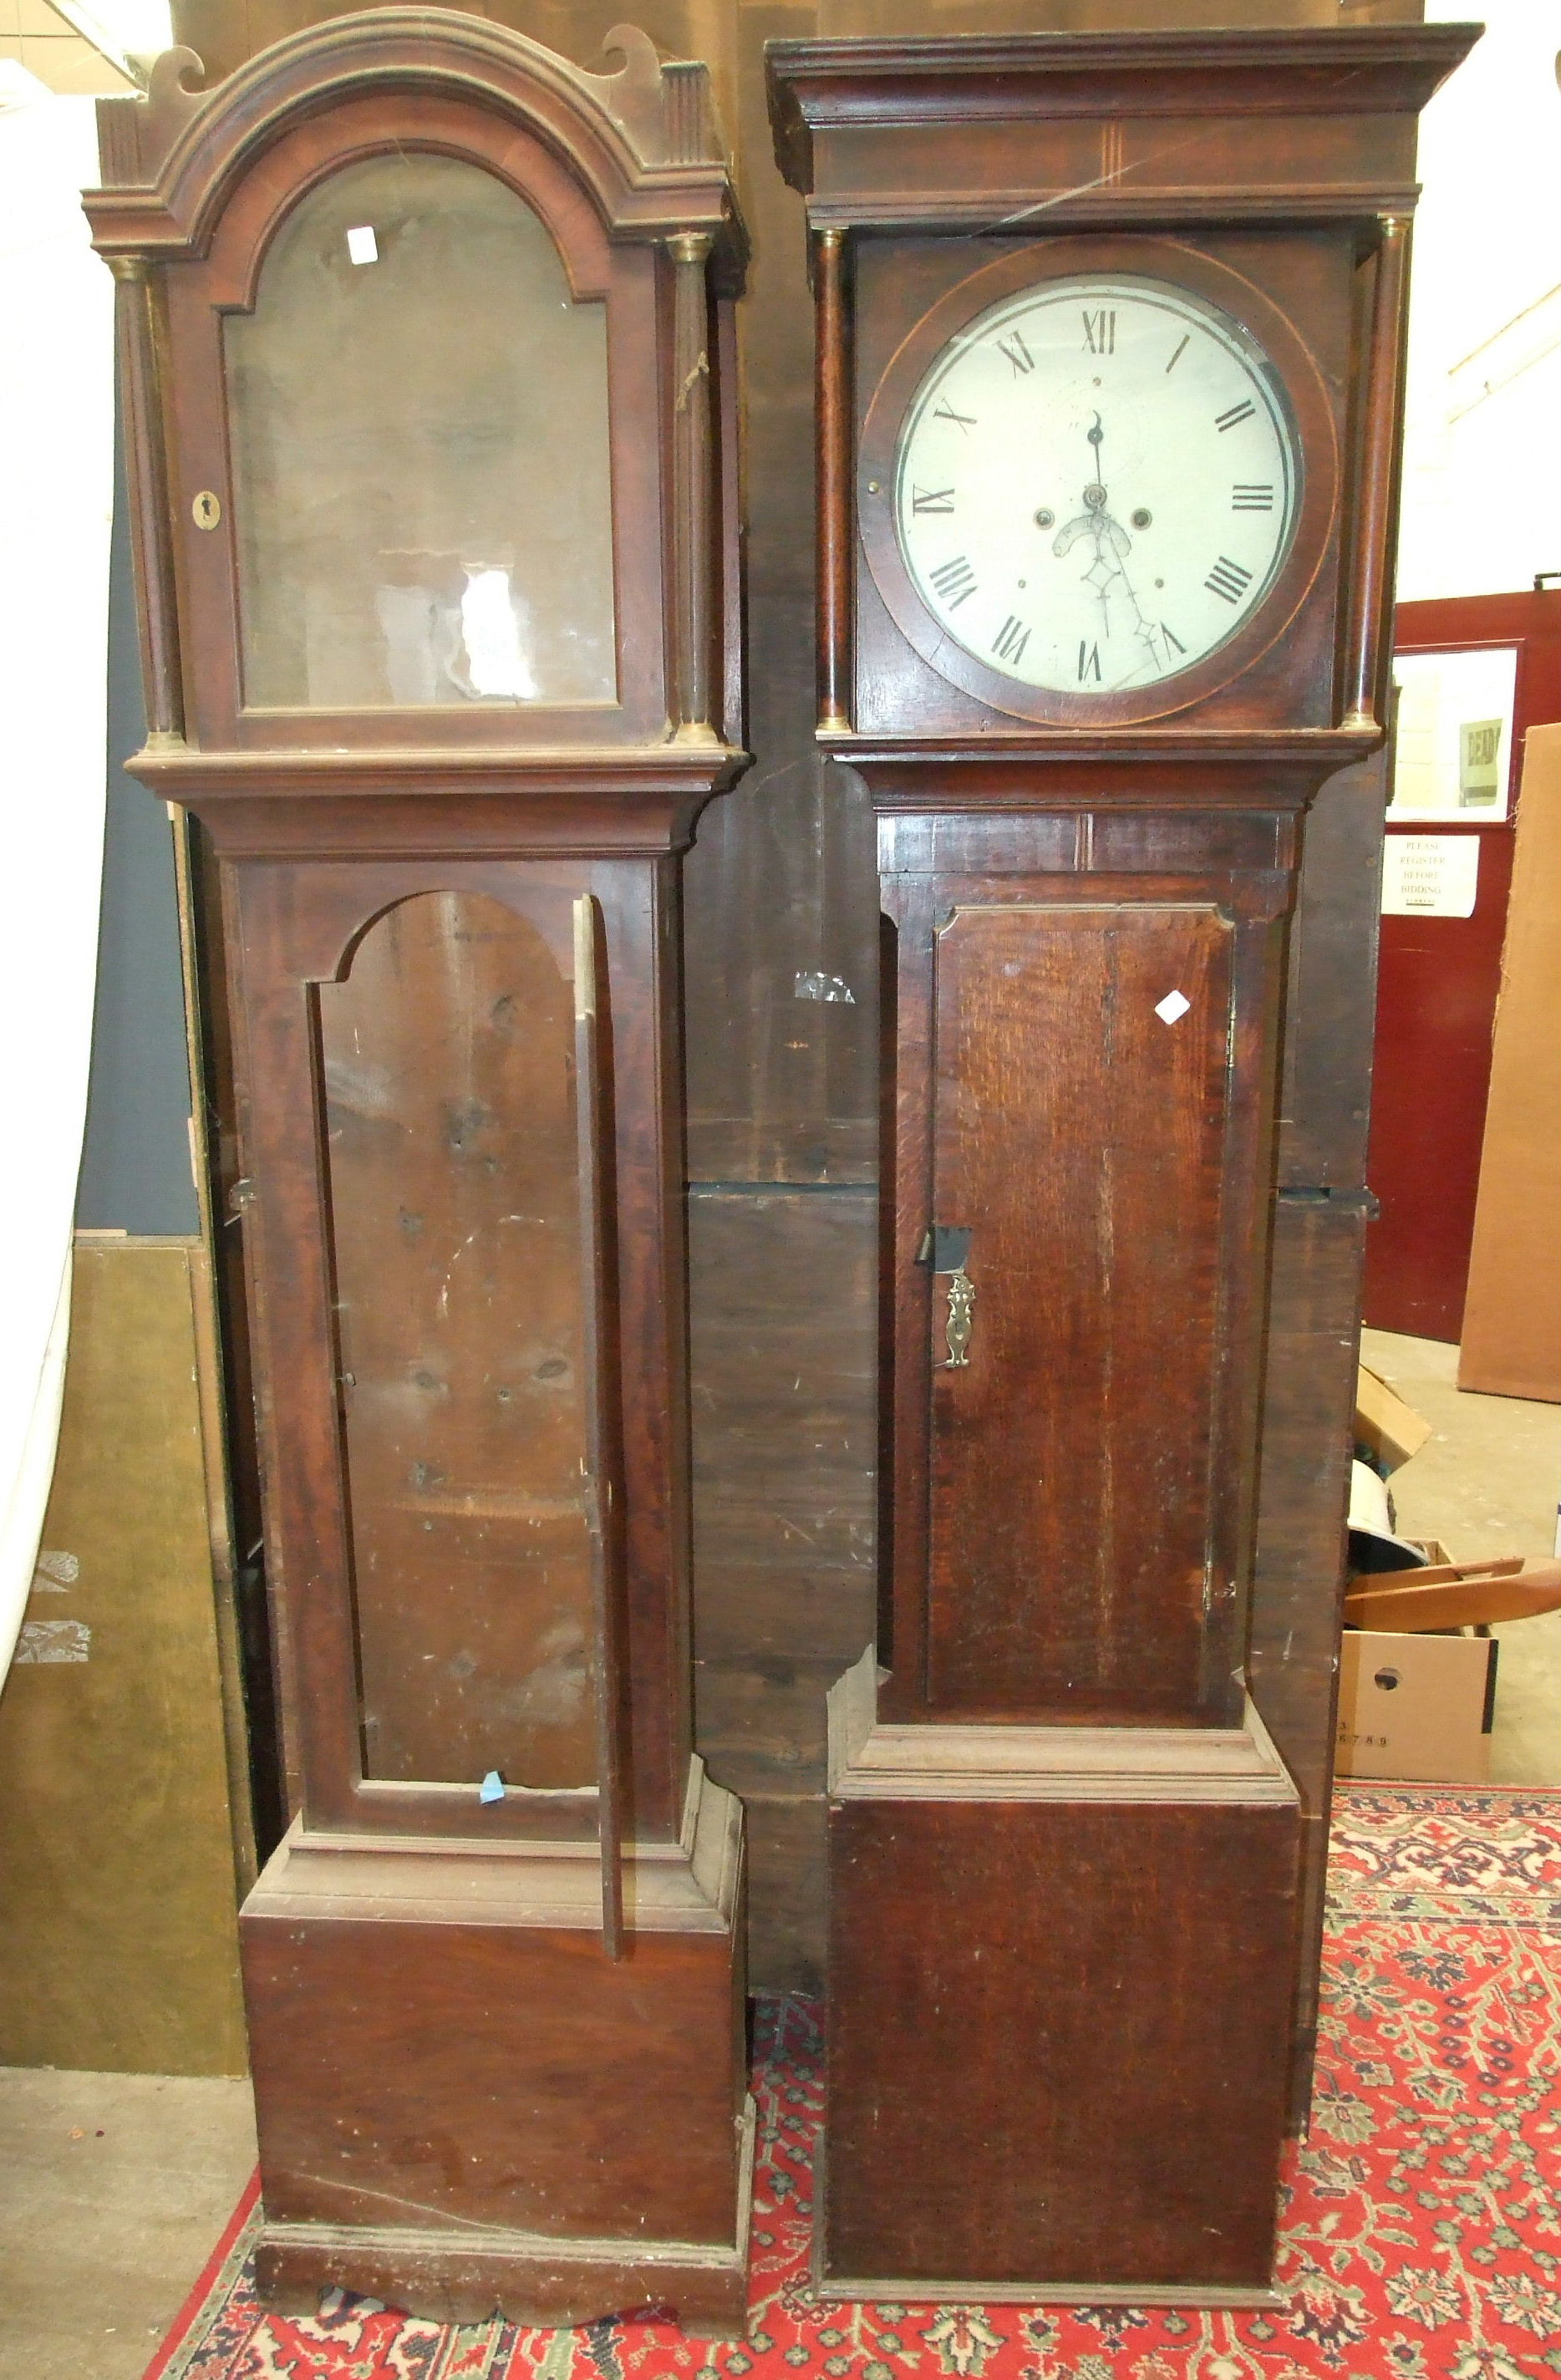 A 19th century oak and mahogany-banded long case clock with circular painted dial and twin-train